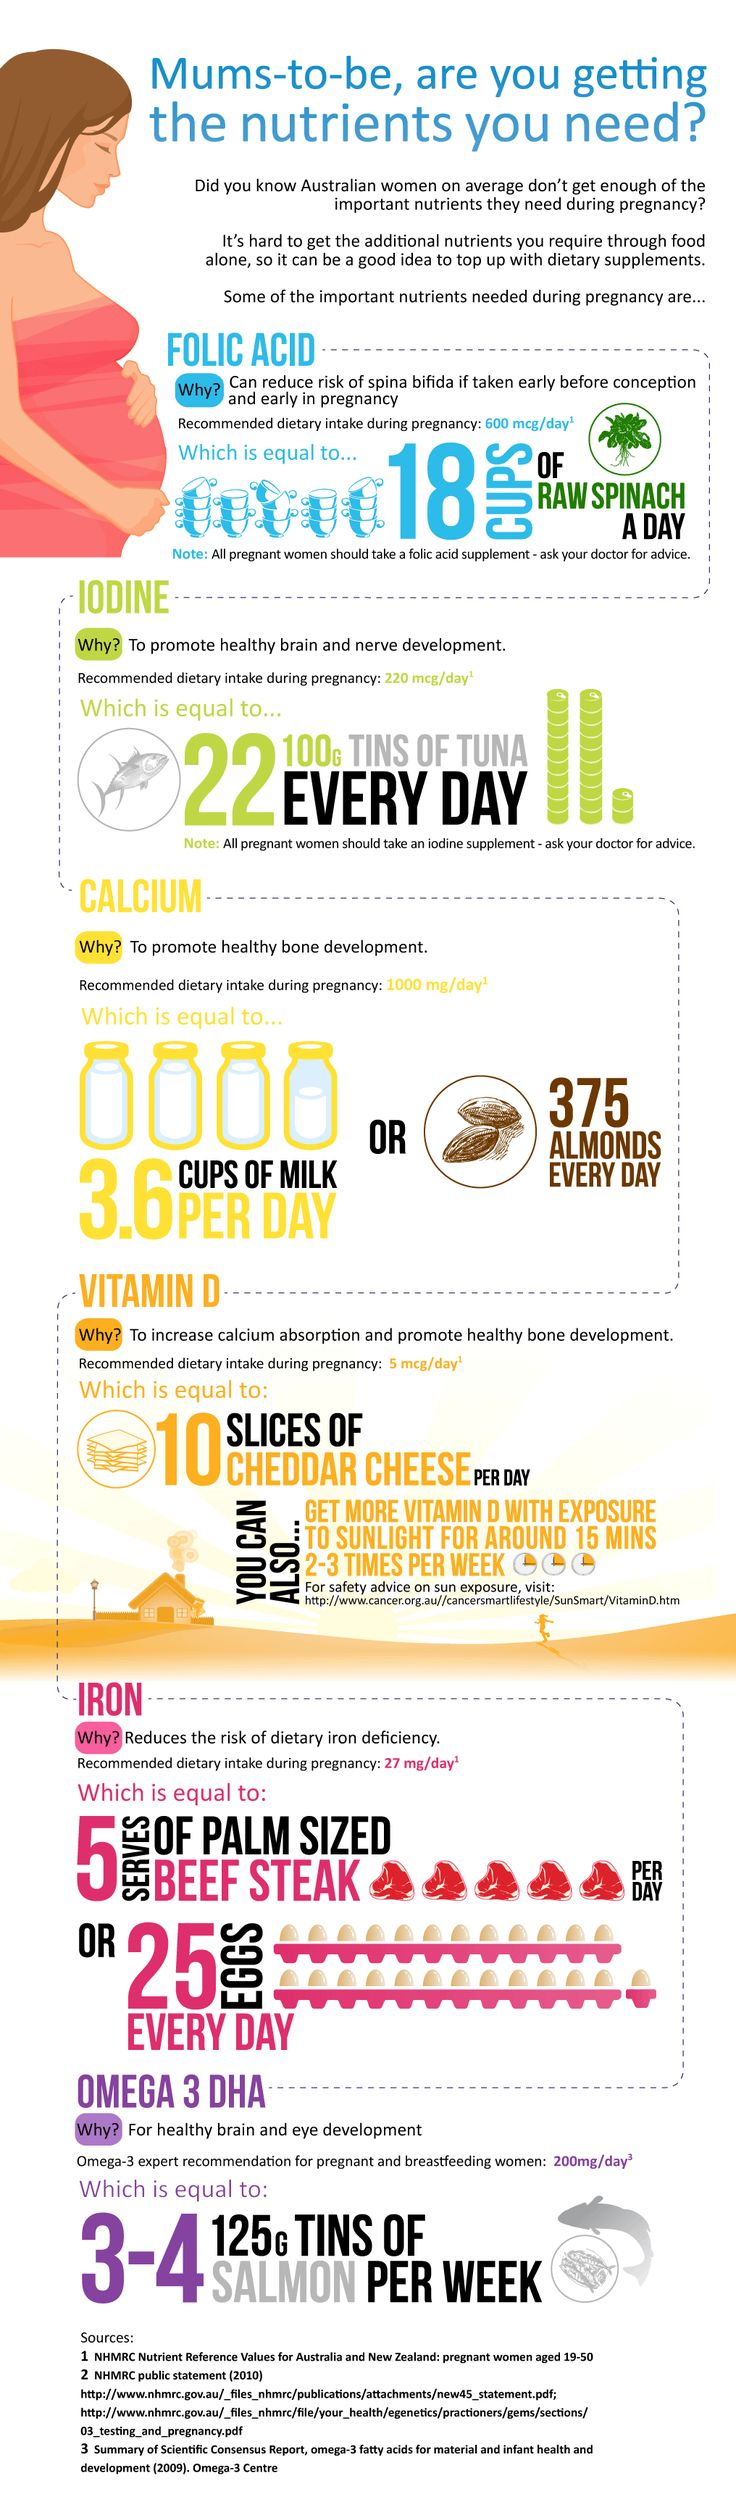 Amazing information about what pregnant women should eat.